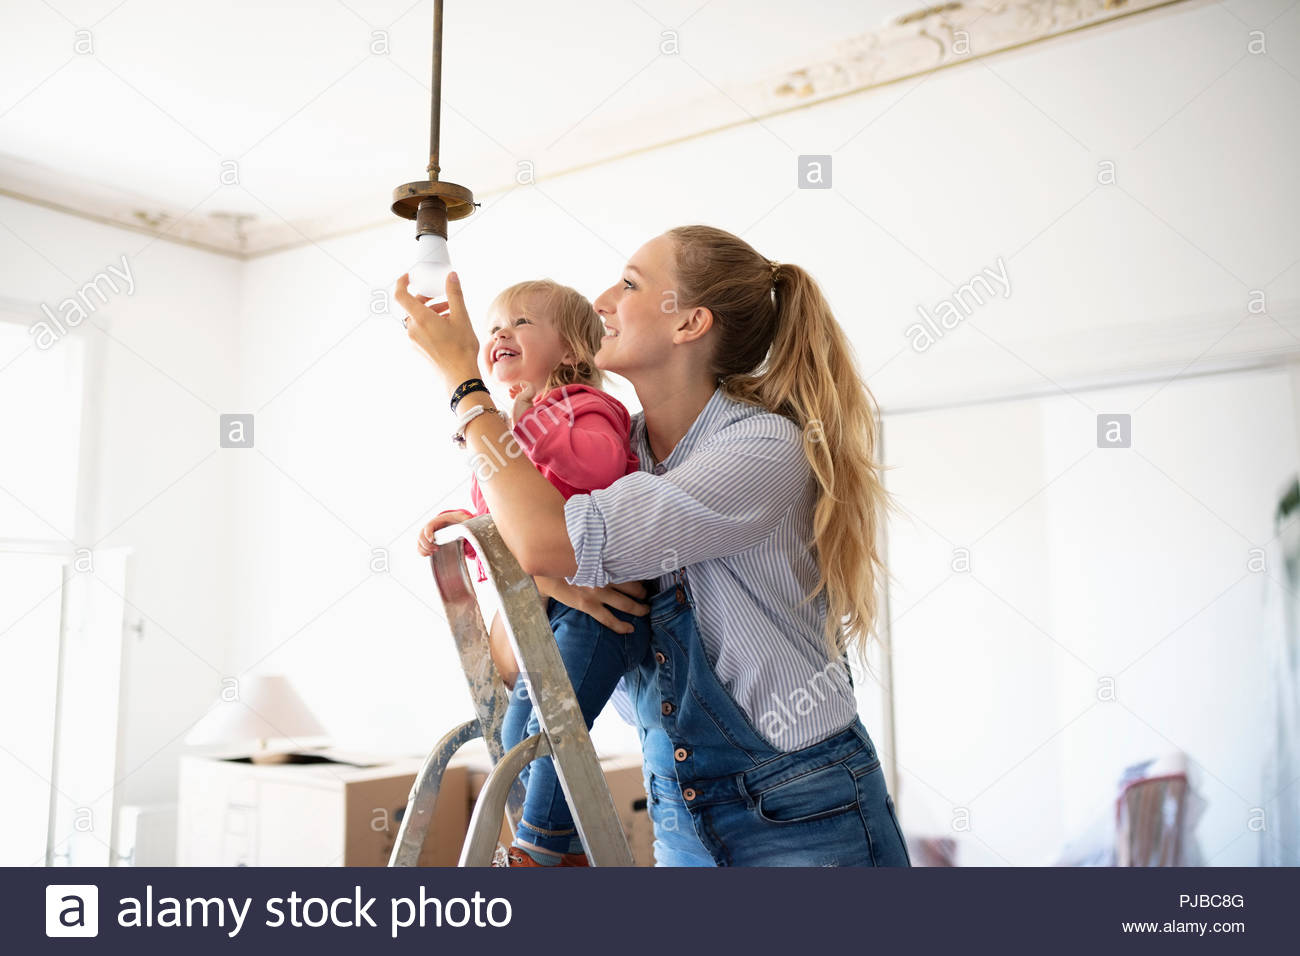 DIY mother and daughter changing light fixture - Stock Image